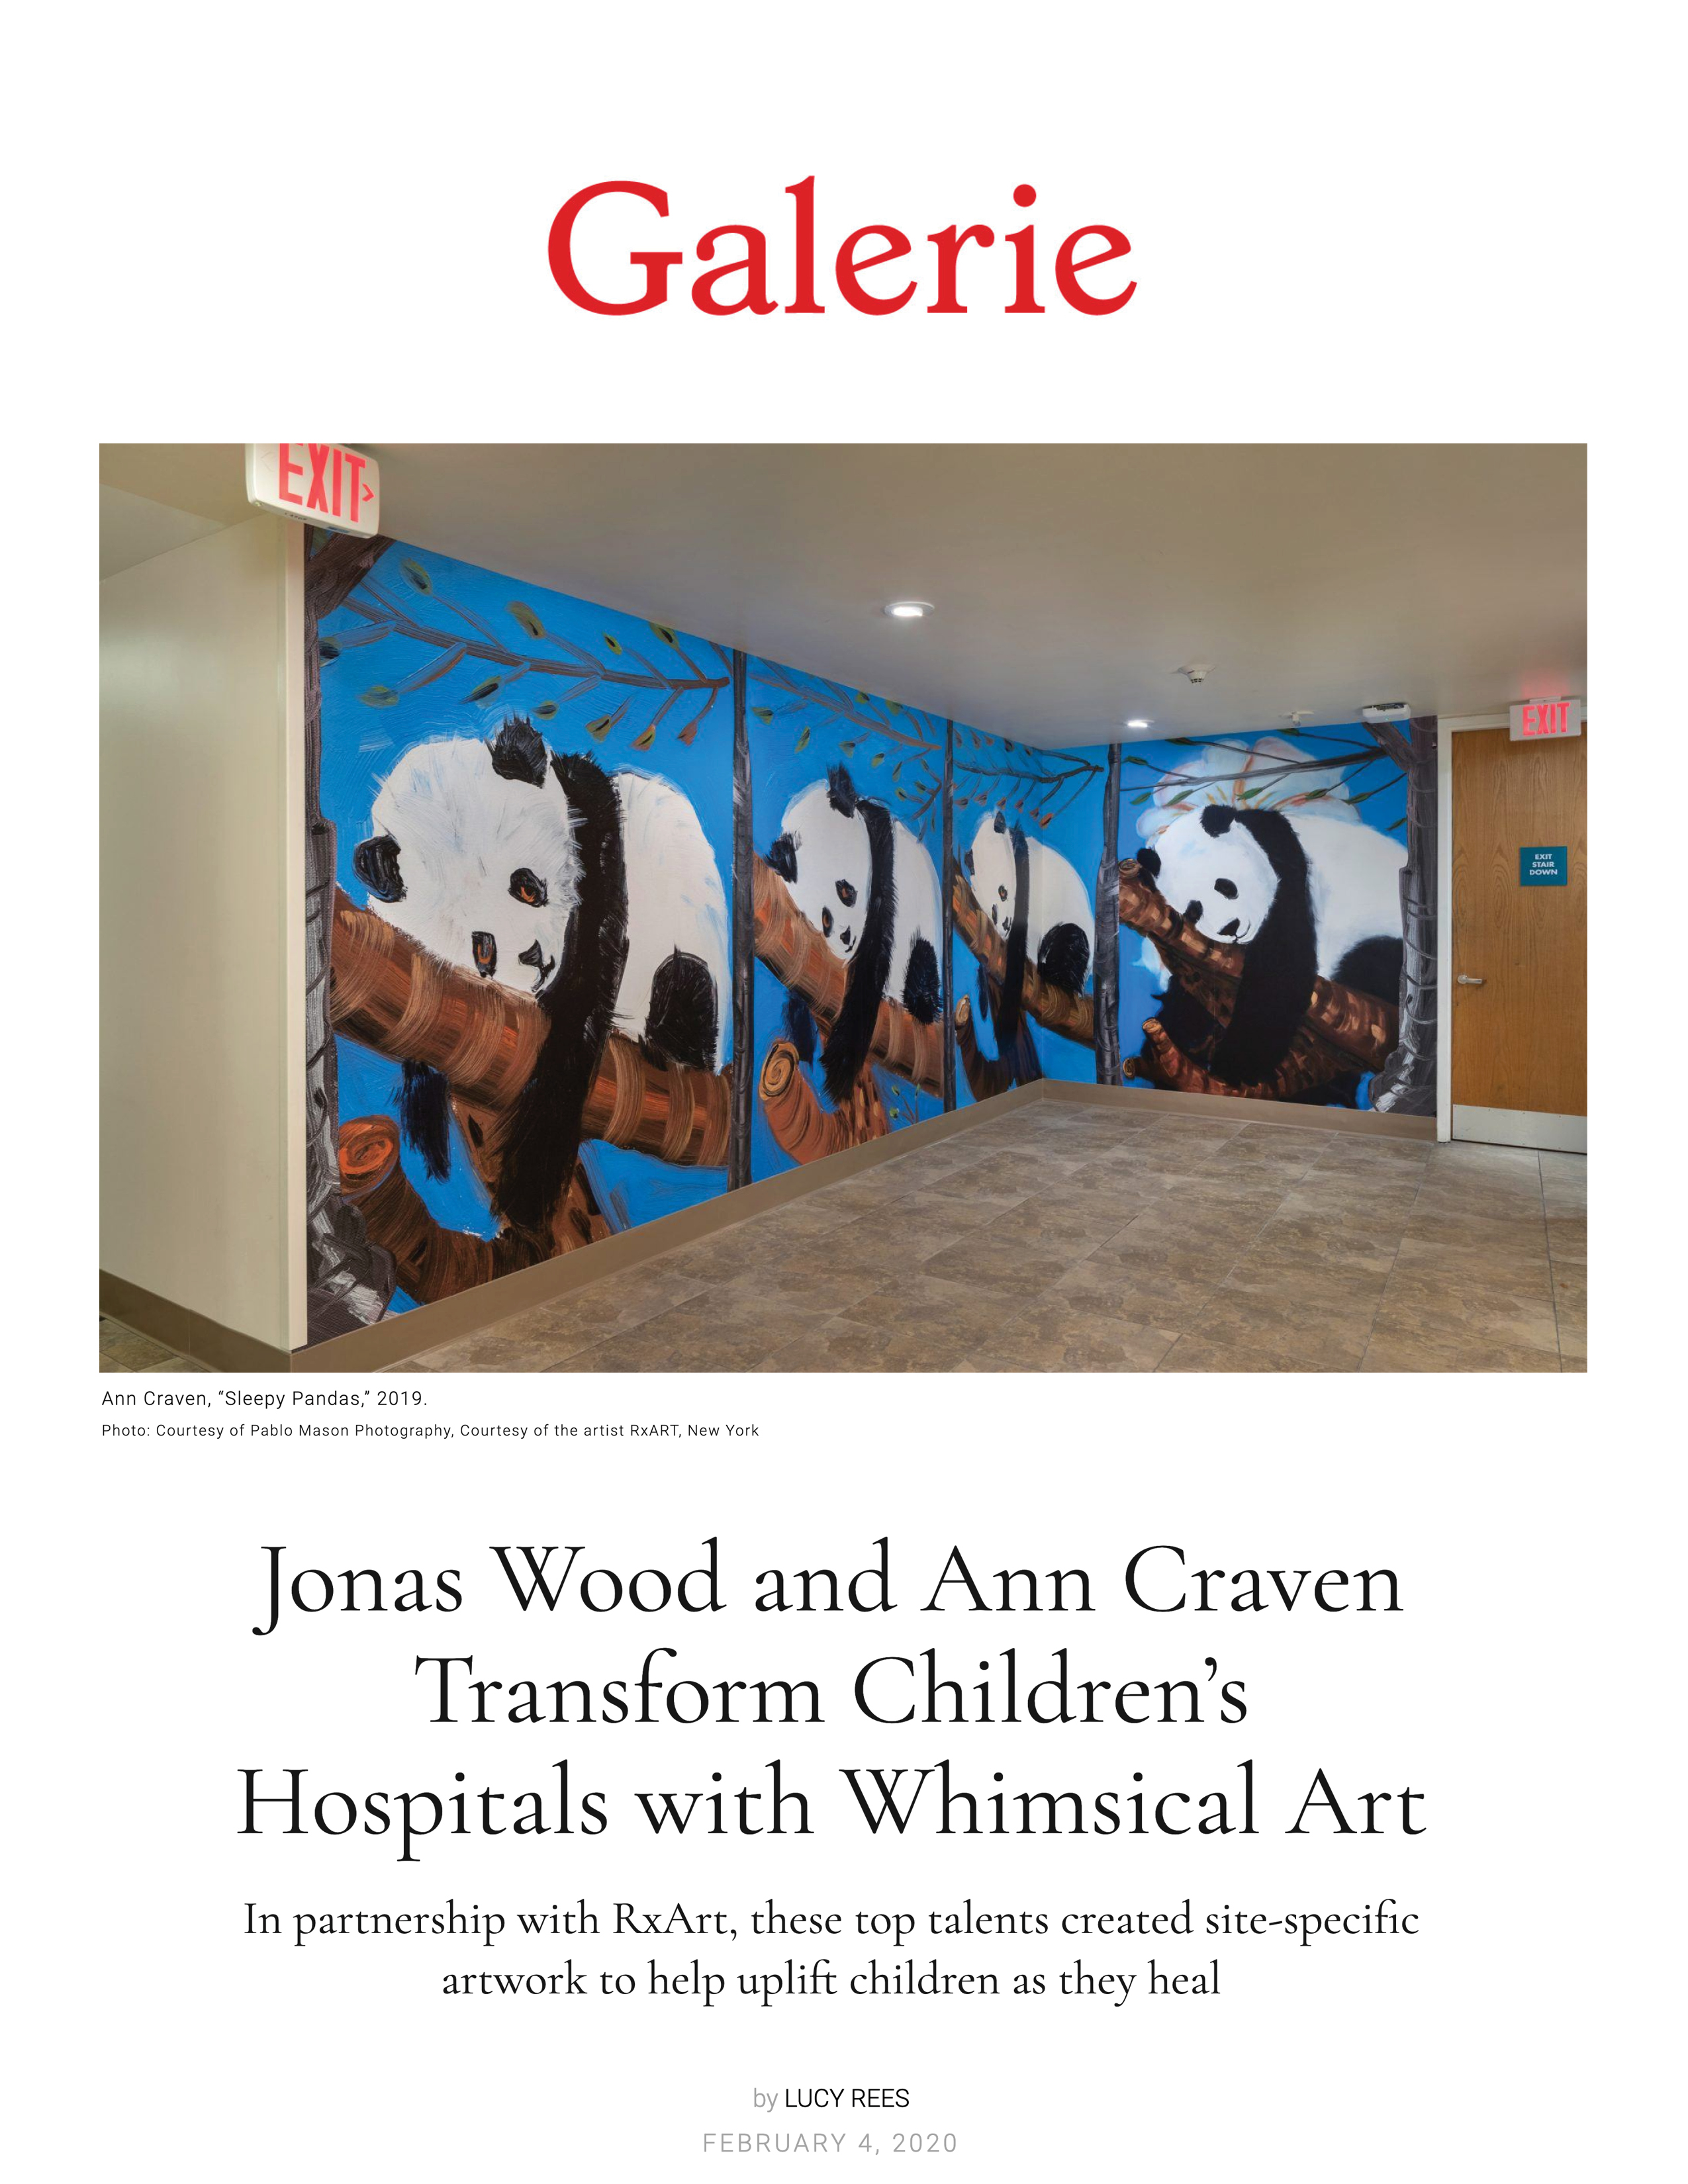 20200419_Galarie_Jonas Wood and Ann Craven Transform Children's Hospitals with Whimsical Art